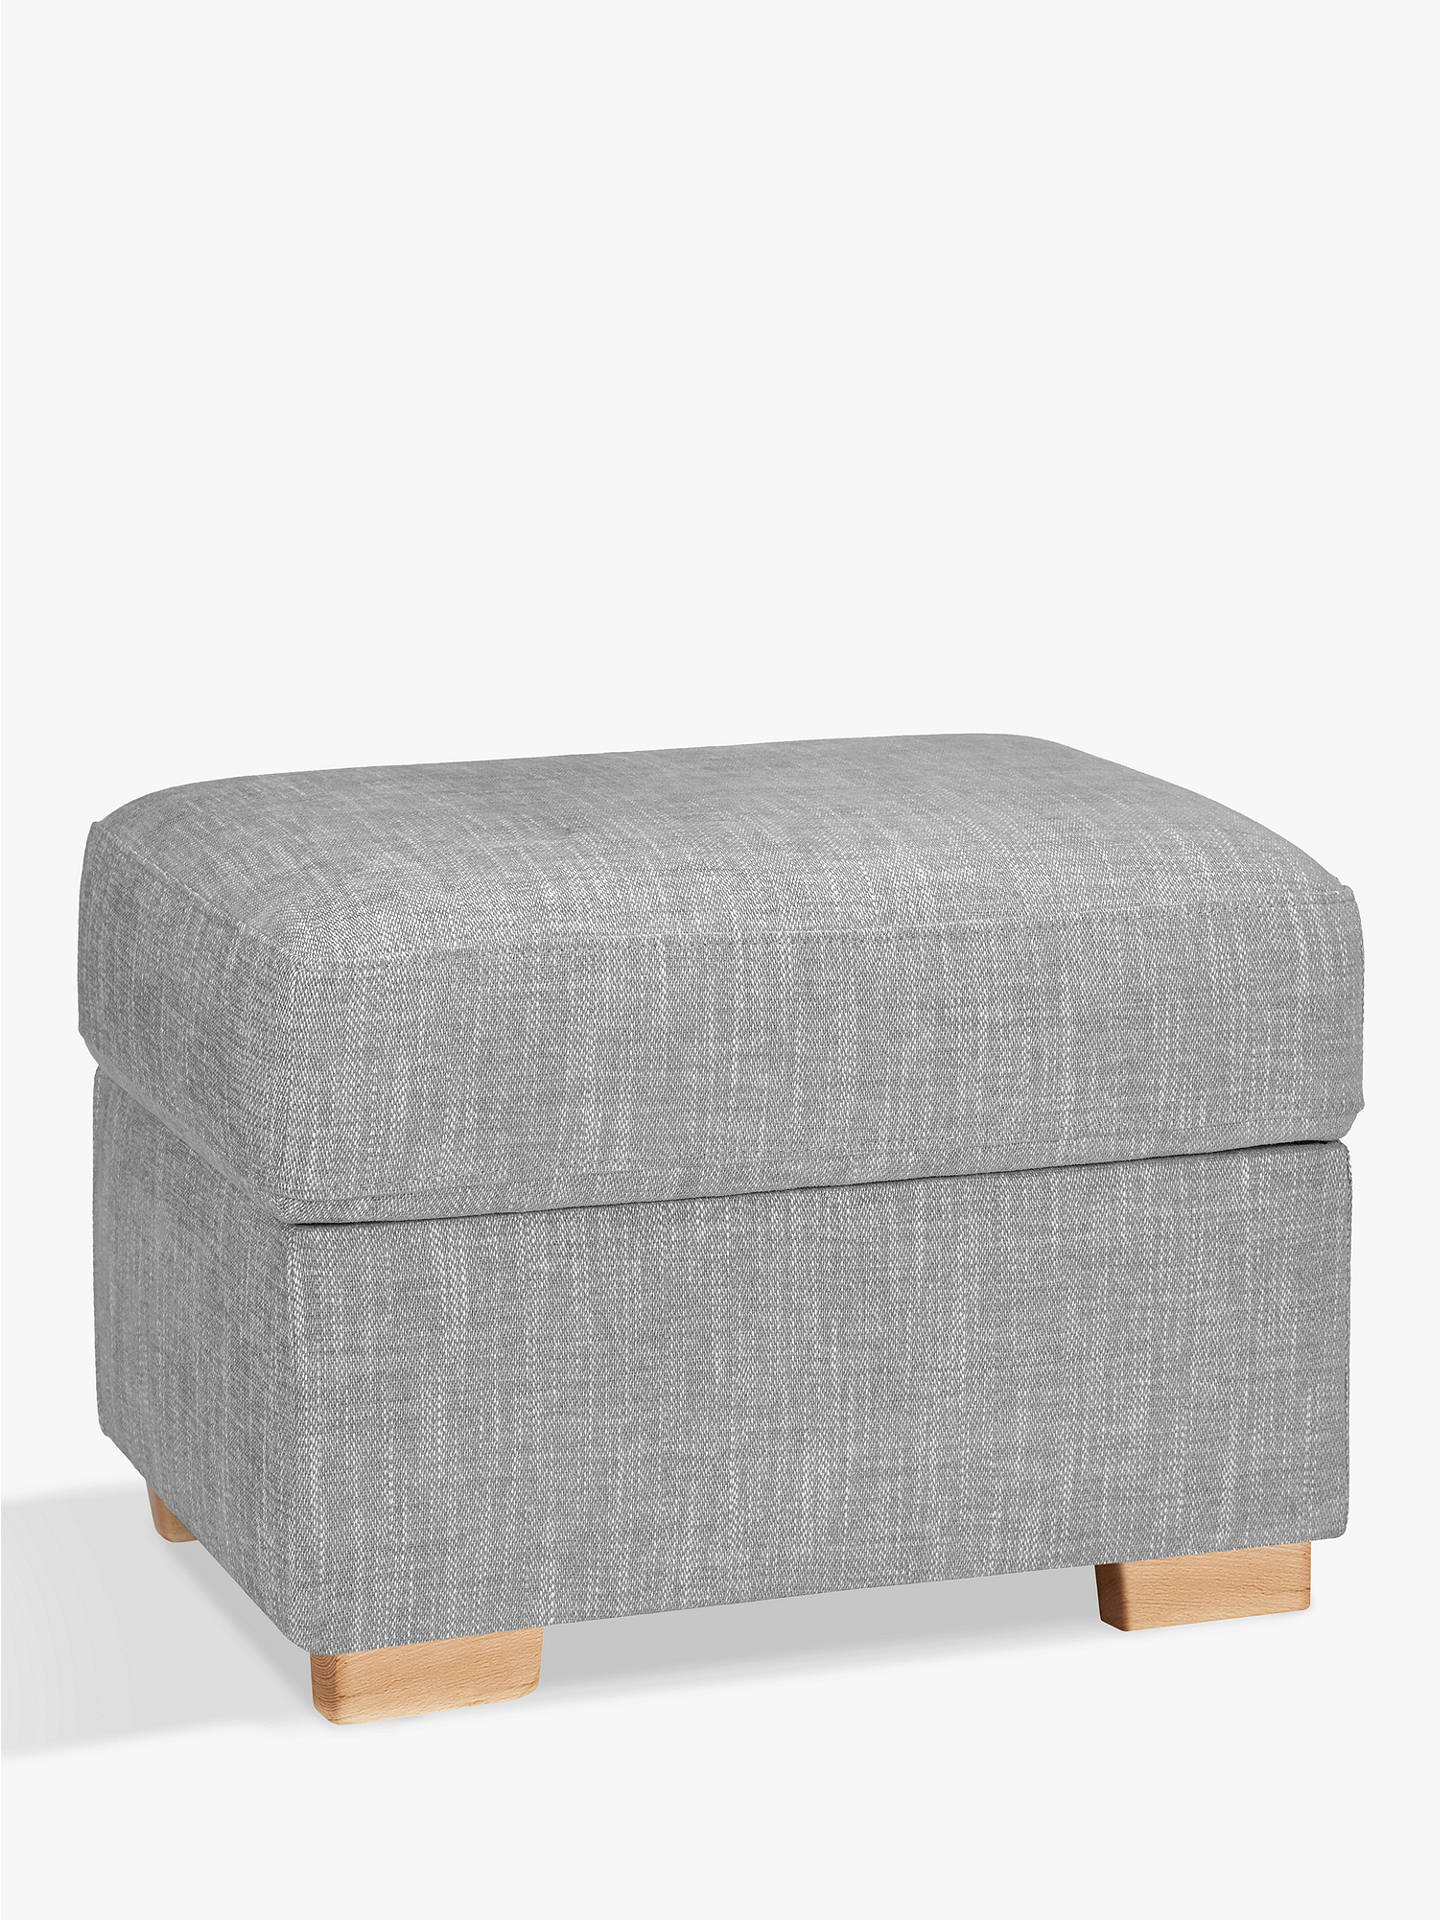 Ordinaire Buy John Lewis U0026 Partners Camden Storage Footstool Online At Johnlewis. ...